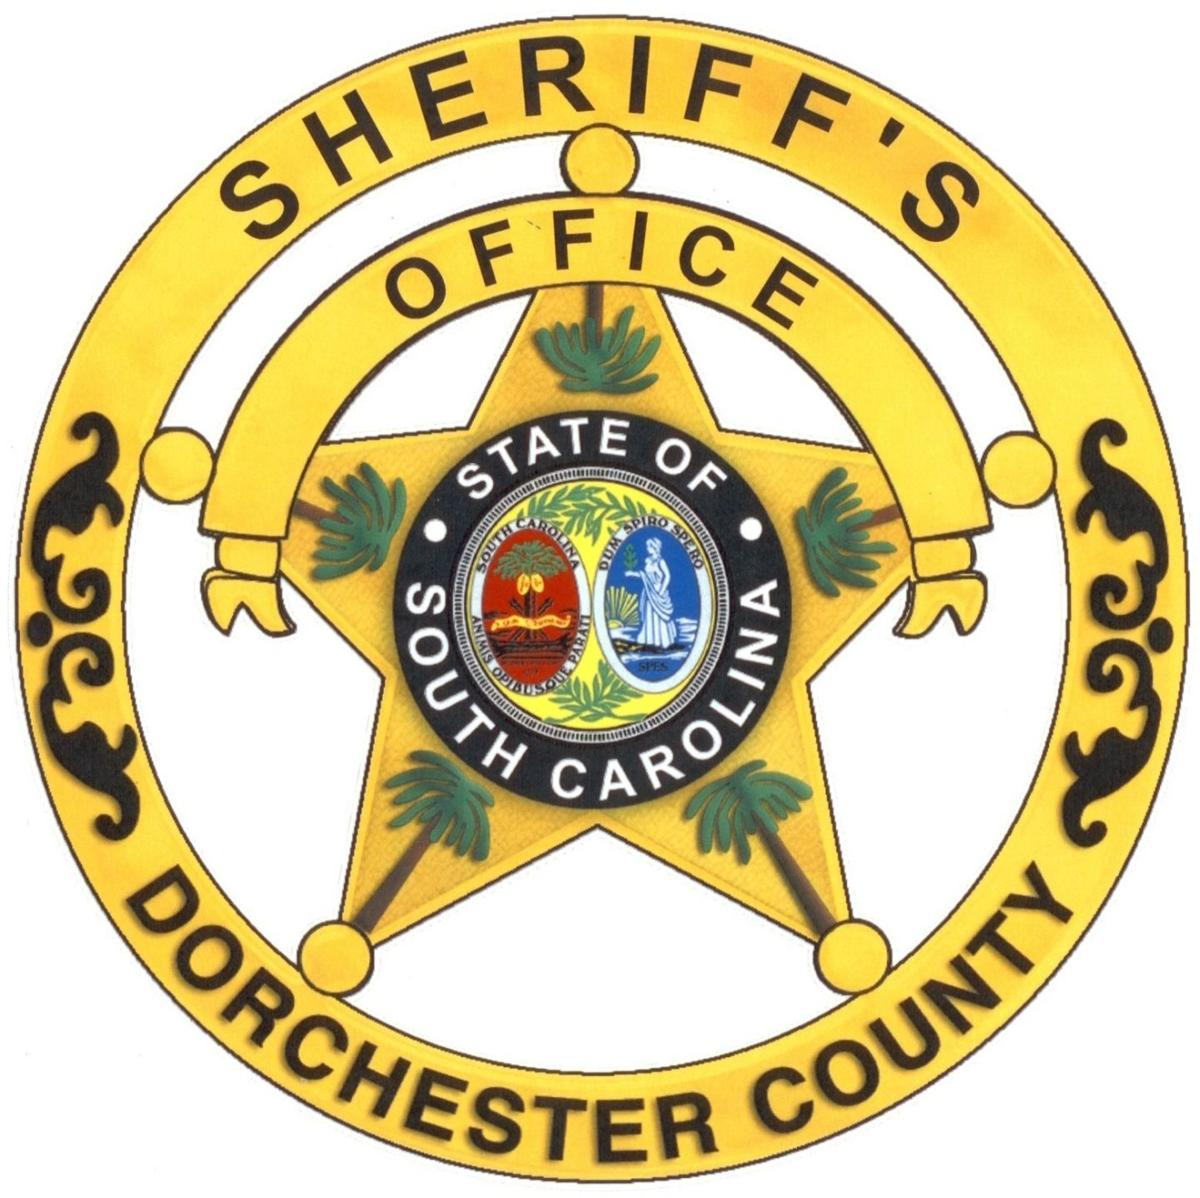 Dorchester County Sheriff's Office